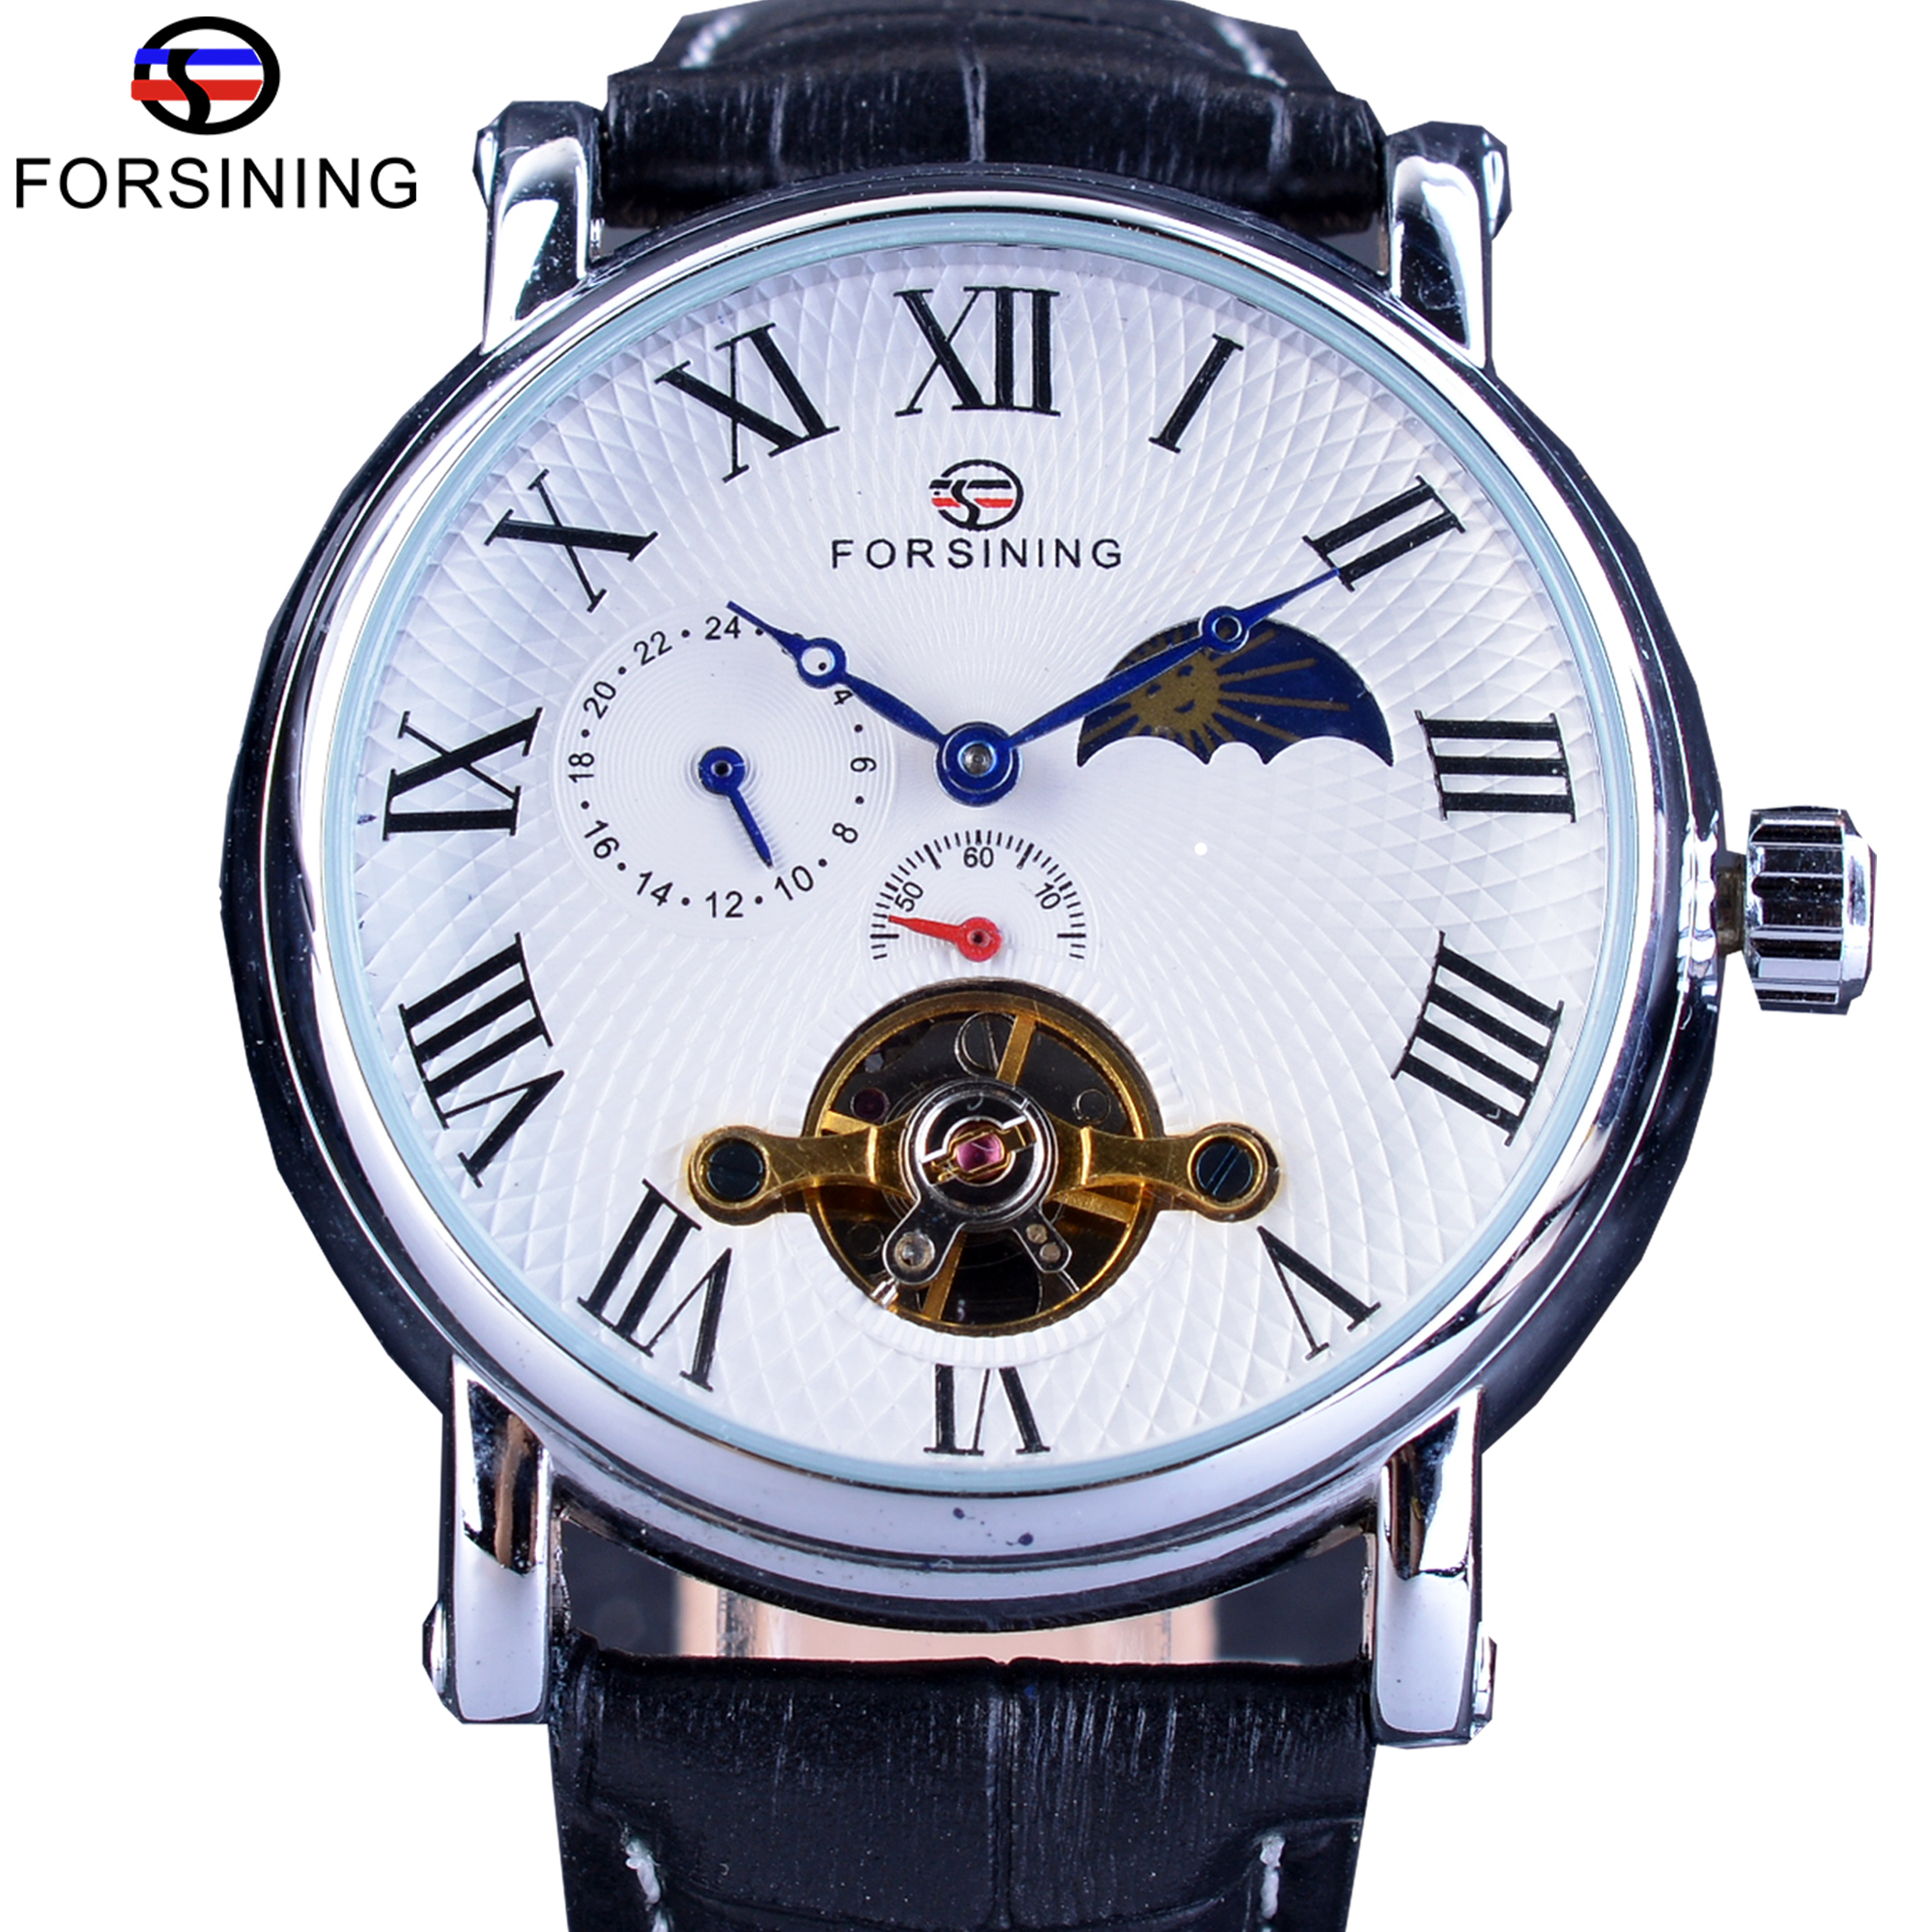 black forsining in watch mens mechanical wrist genuine for watches men item calendar clock leather fashionable display military from on